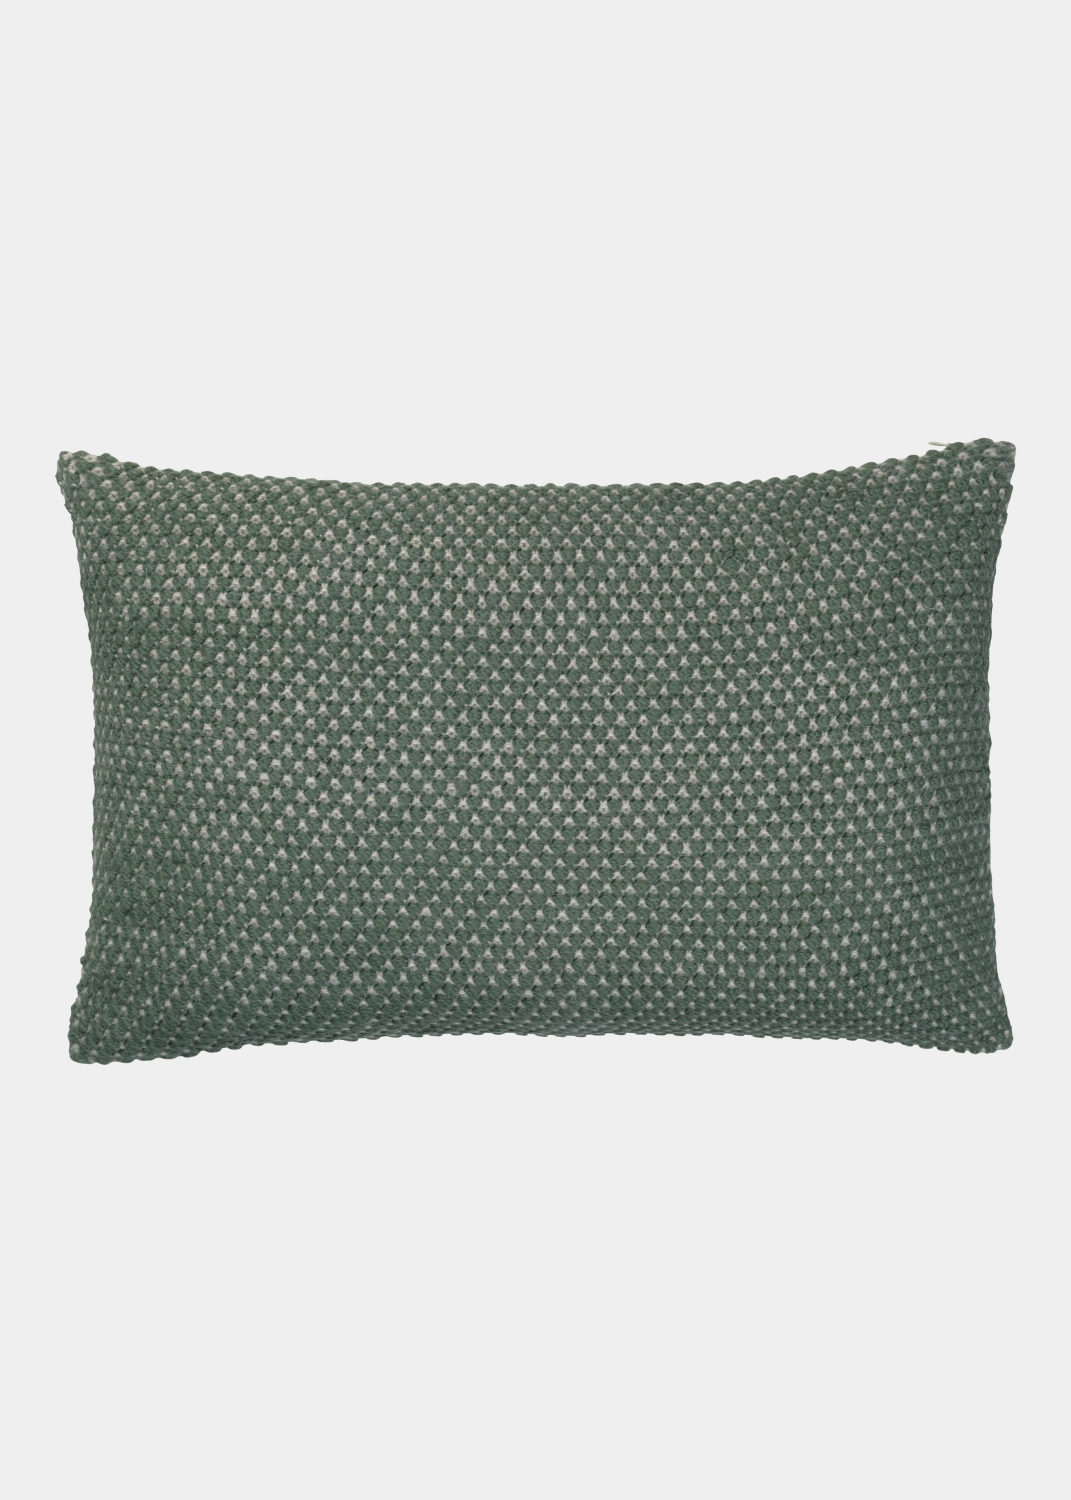 Cushions - Heather Pillow (40x60)